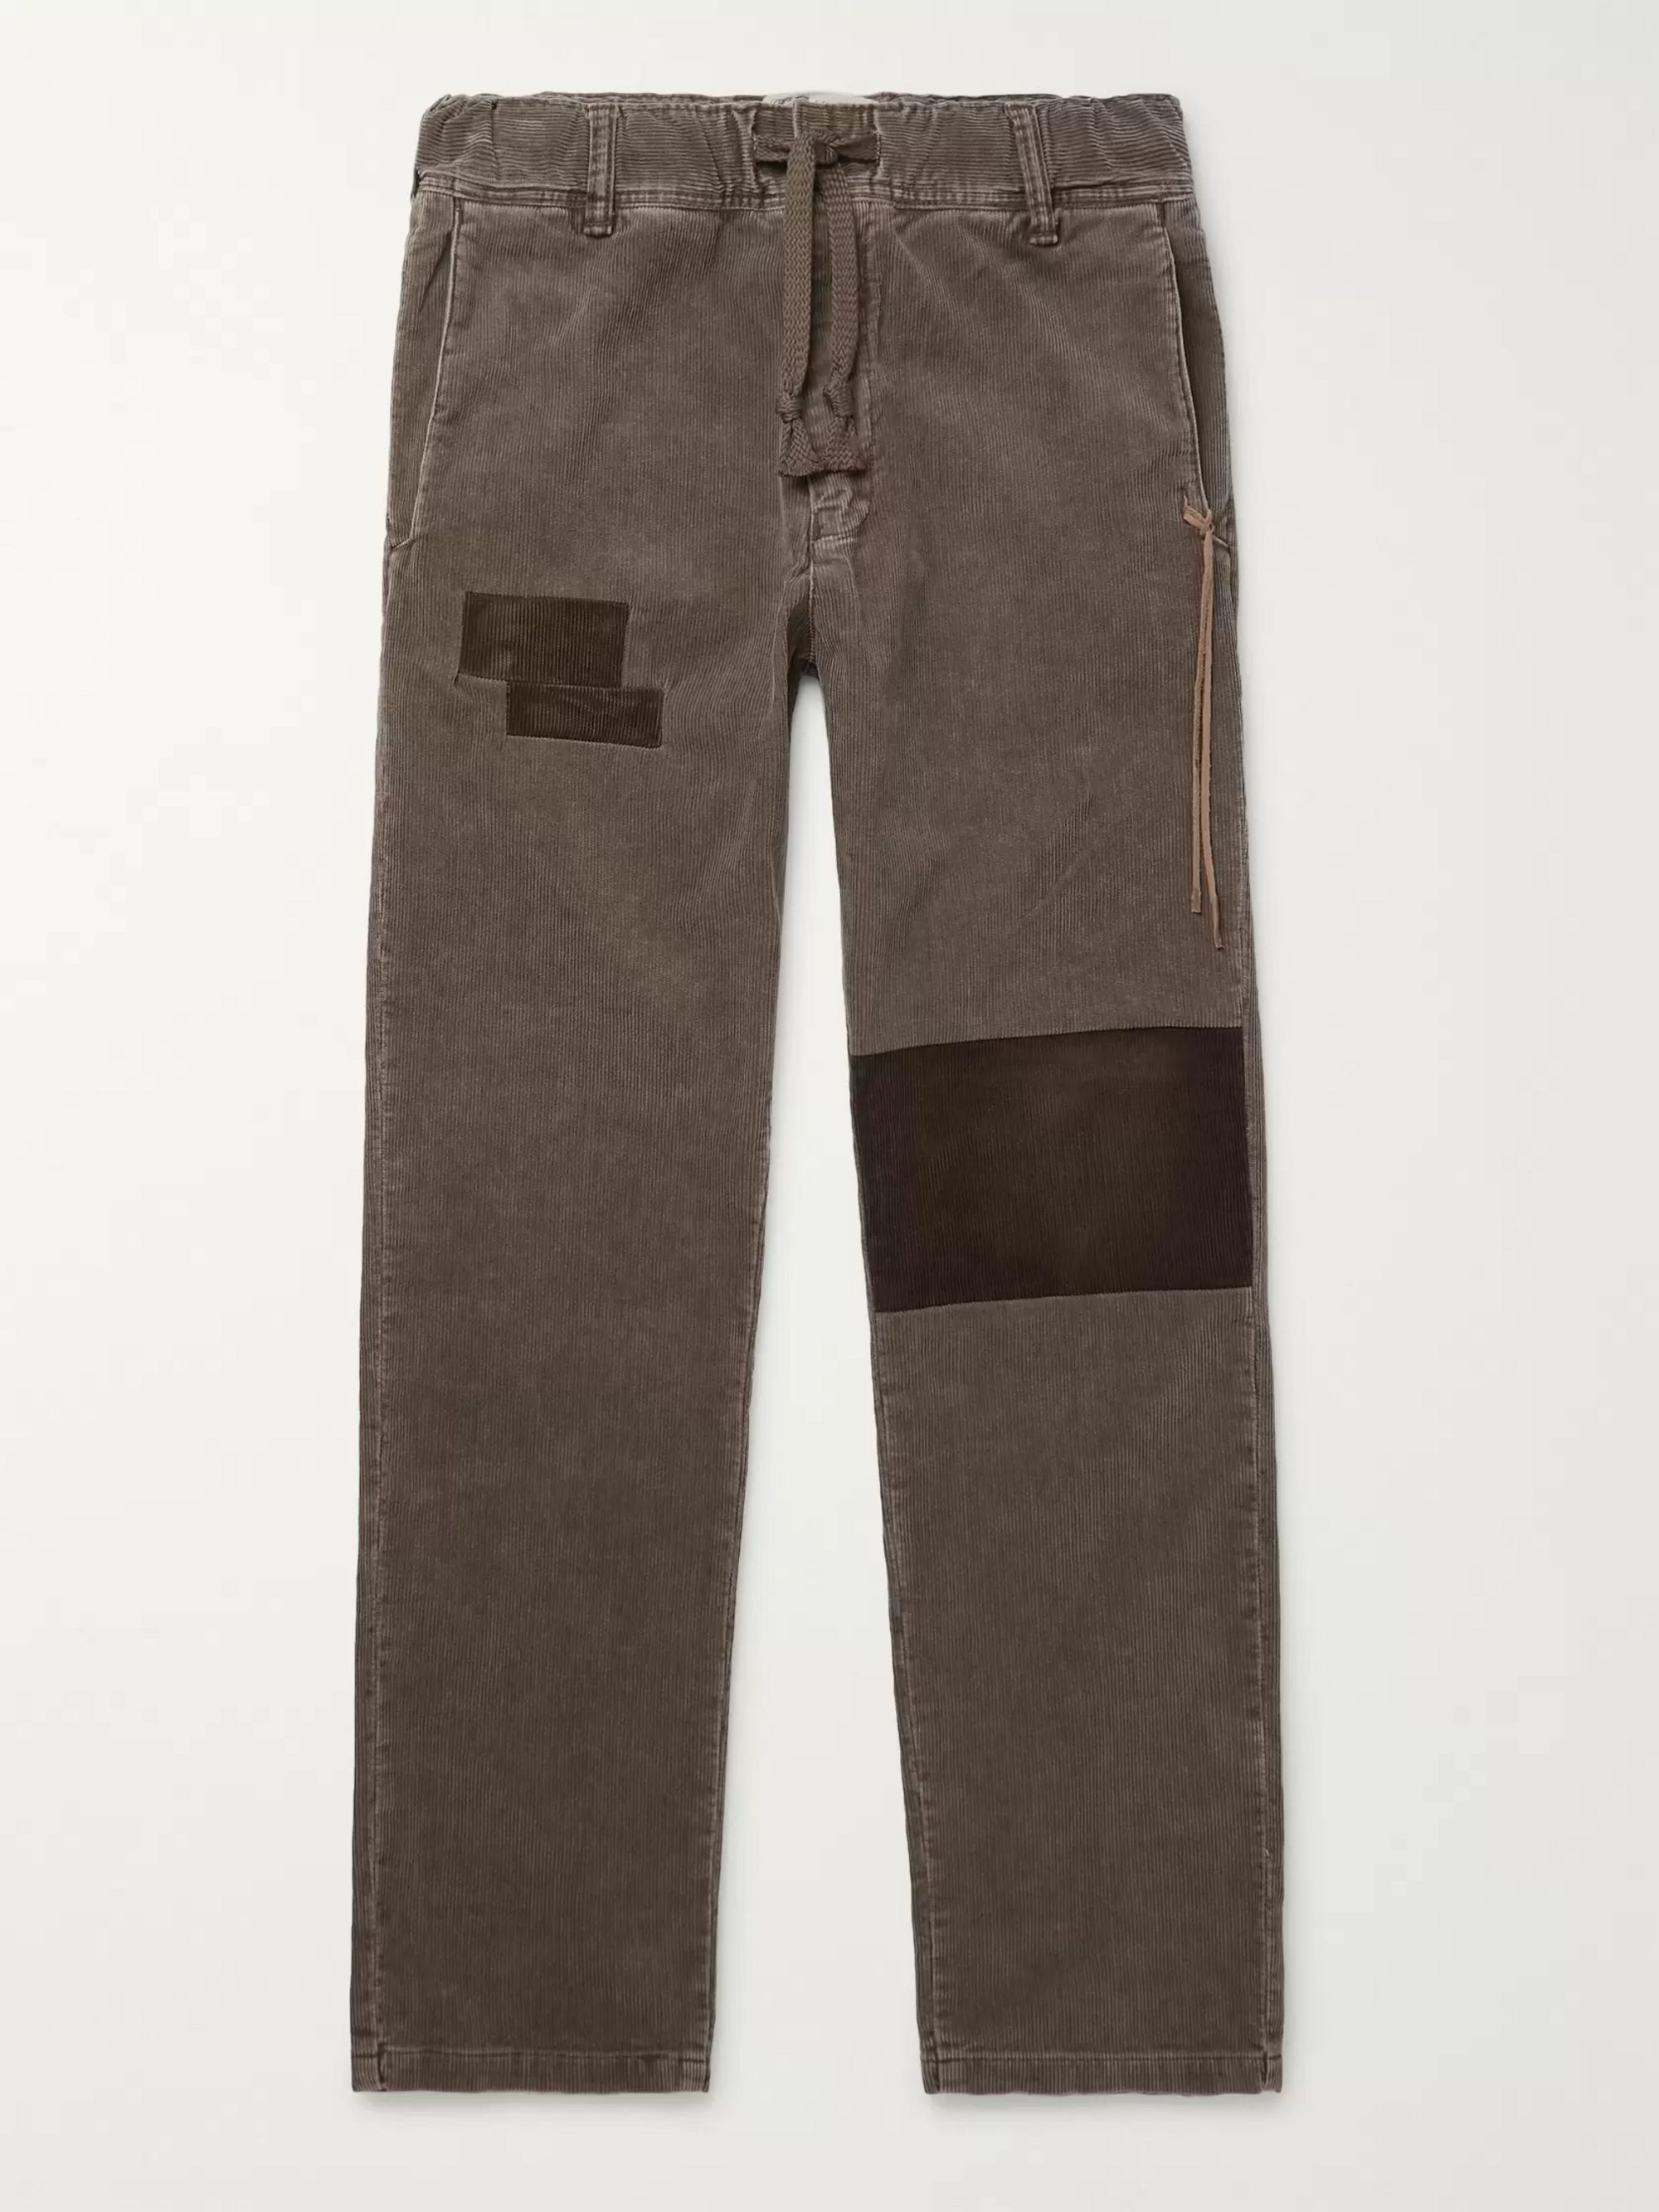 Patchwork Cotton Blend Corduroy Trousers by Remi Relief